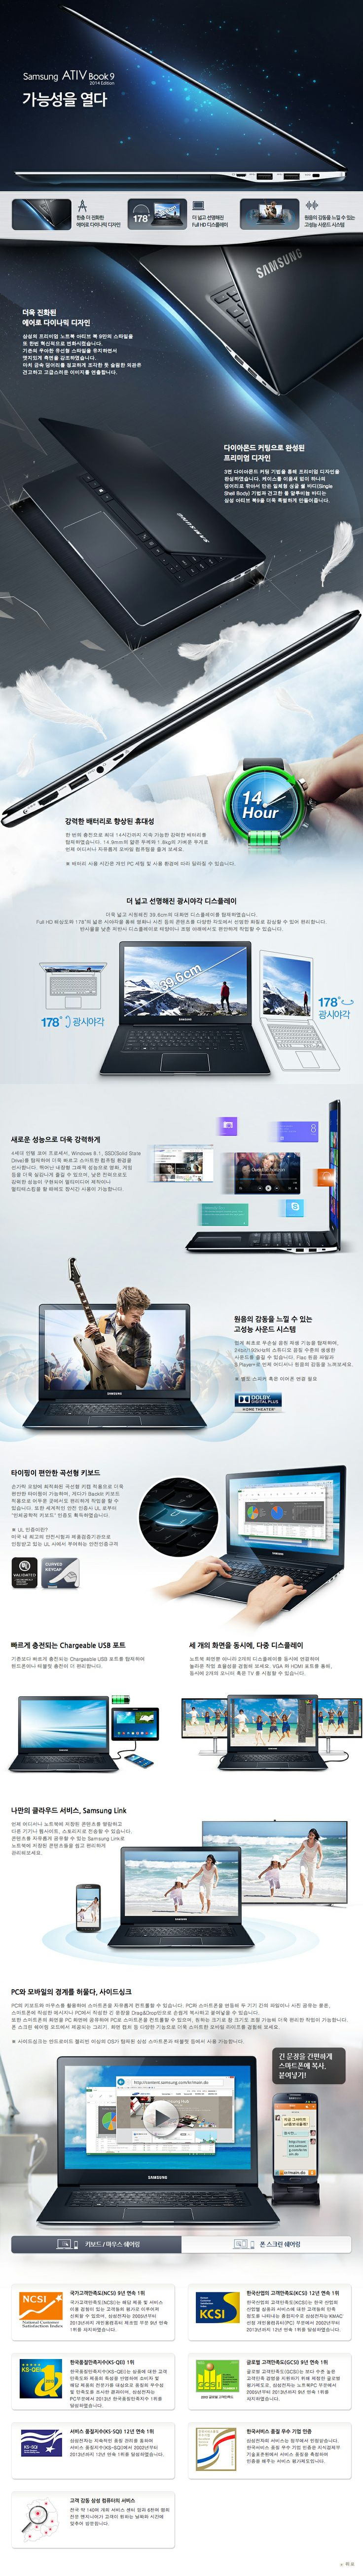 http://www.samsung.com/sec/consumer/it/notebook/slim/NT930X5J-K51-features?subsubtype=book-9